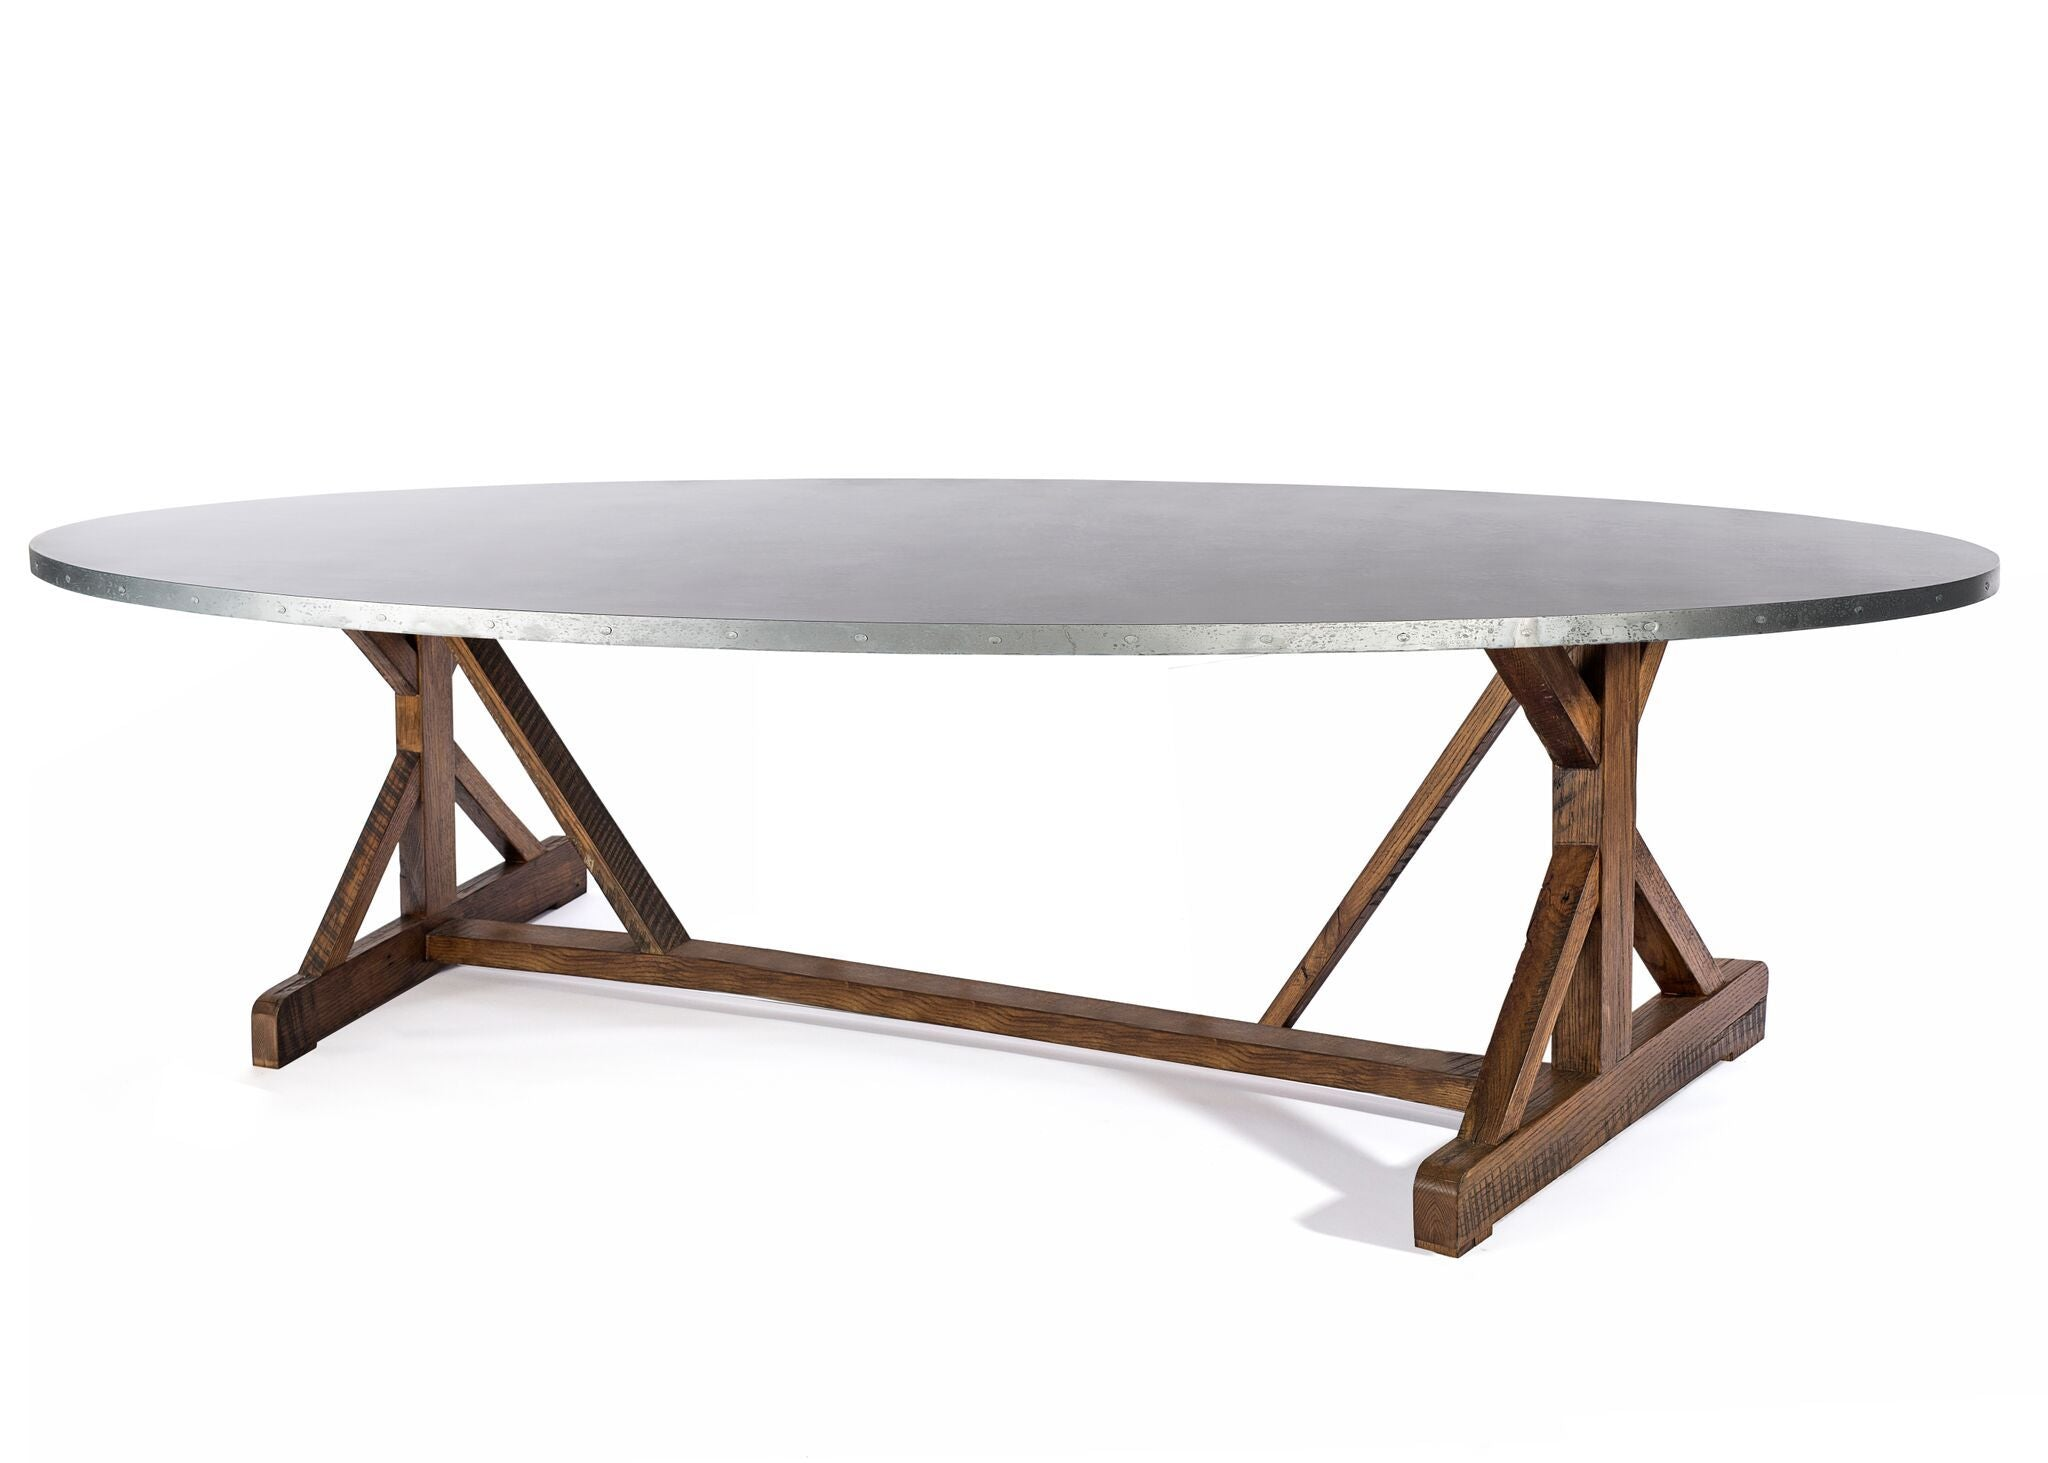 Zinc Oval Tables | French Trestle | CLASSIC | Natural Black Walnut | CUSTOM SIZE L 53 W 30 H 30 | kingston-krafts-zinc-tables.